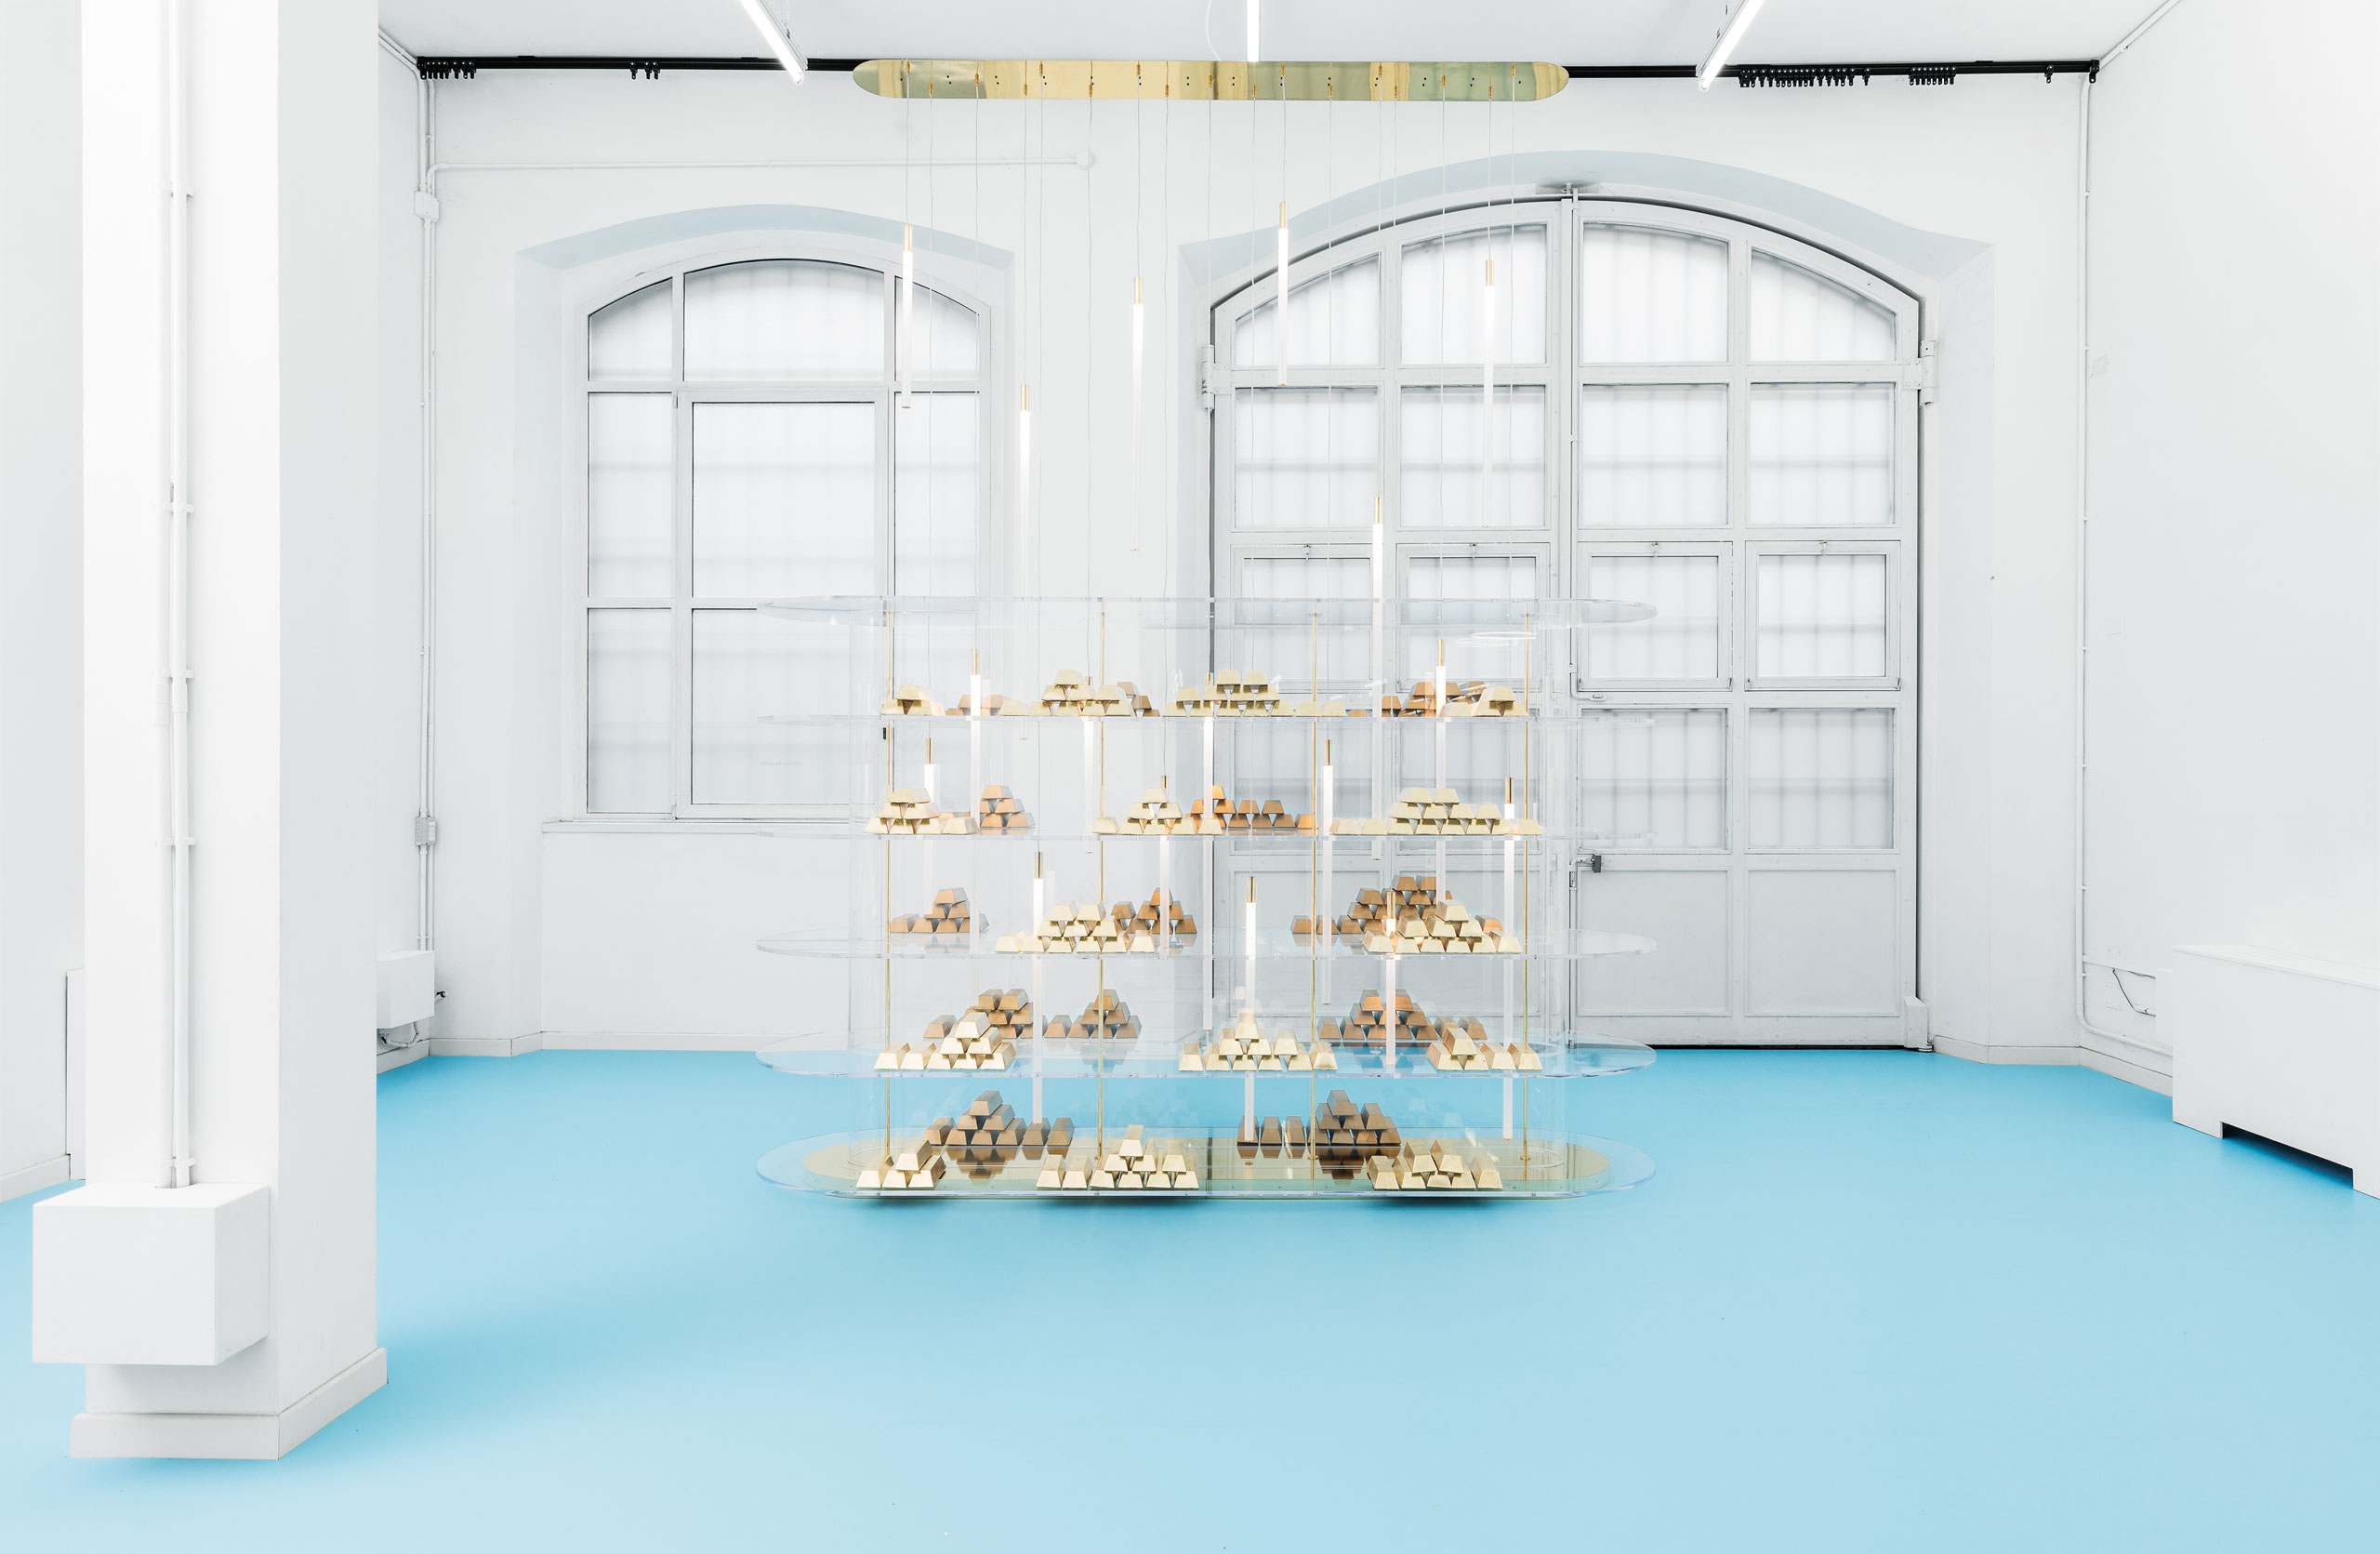 GOD project by Alberto Biagetti and Laura Baldassari curated by Maria Cristina Didero. Tornello : Table with structure in chrome plated steel, details in polished brass and ultra-white glass top.-120 x 185 x H 72 cm-47 x 73 x H 28 inches-Photo by Delfino Sisto Legnani, ©Atelier Biagetti.